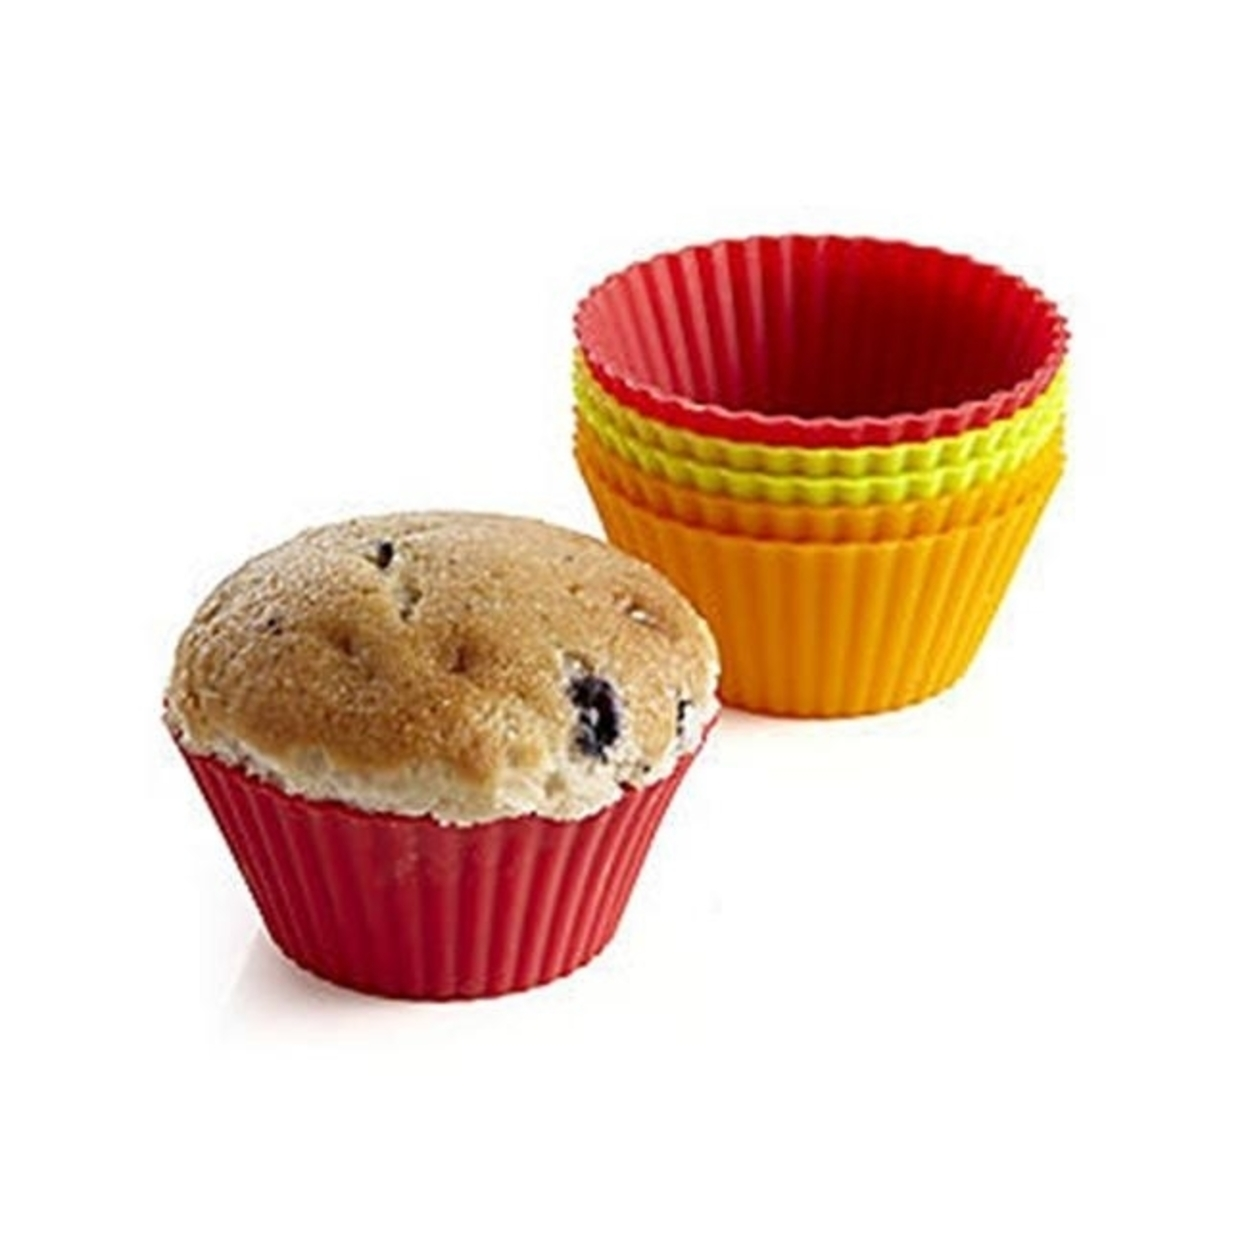 Bethany Housewares 170 Silicone Muffin Liners - Set of 6 5a3beecee224615ab87bc35f